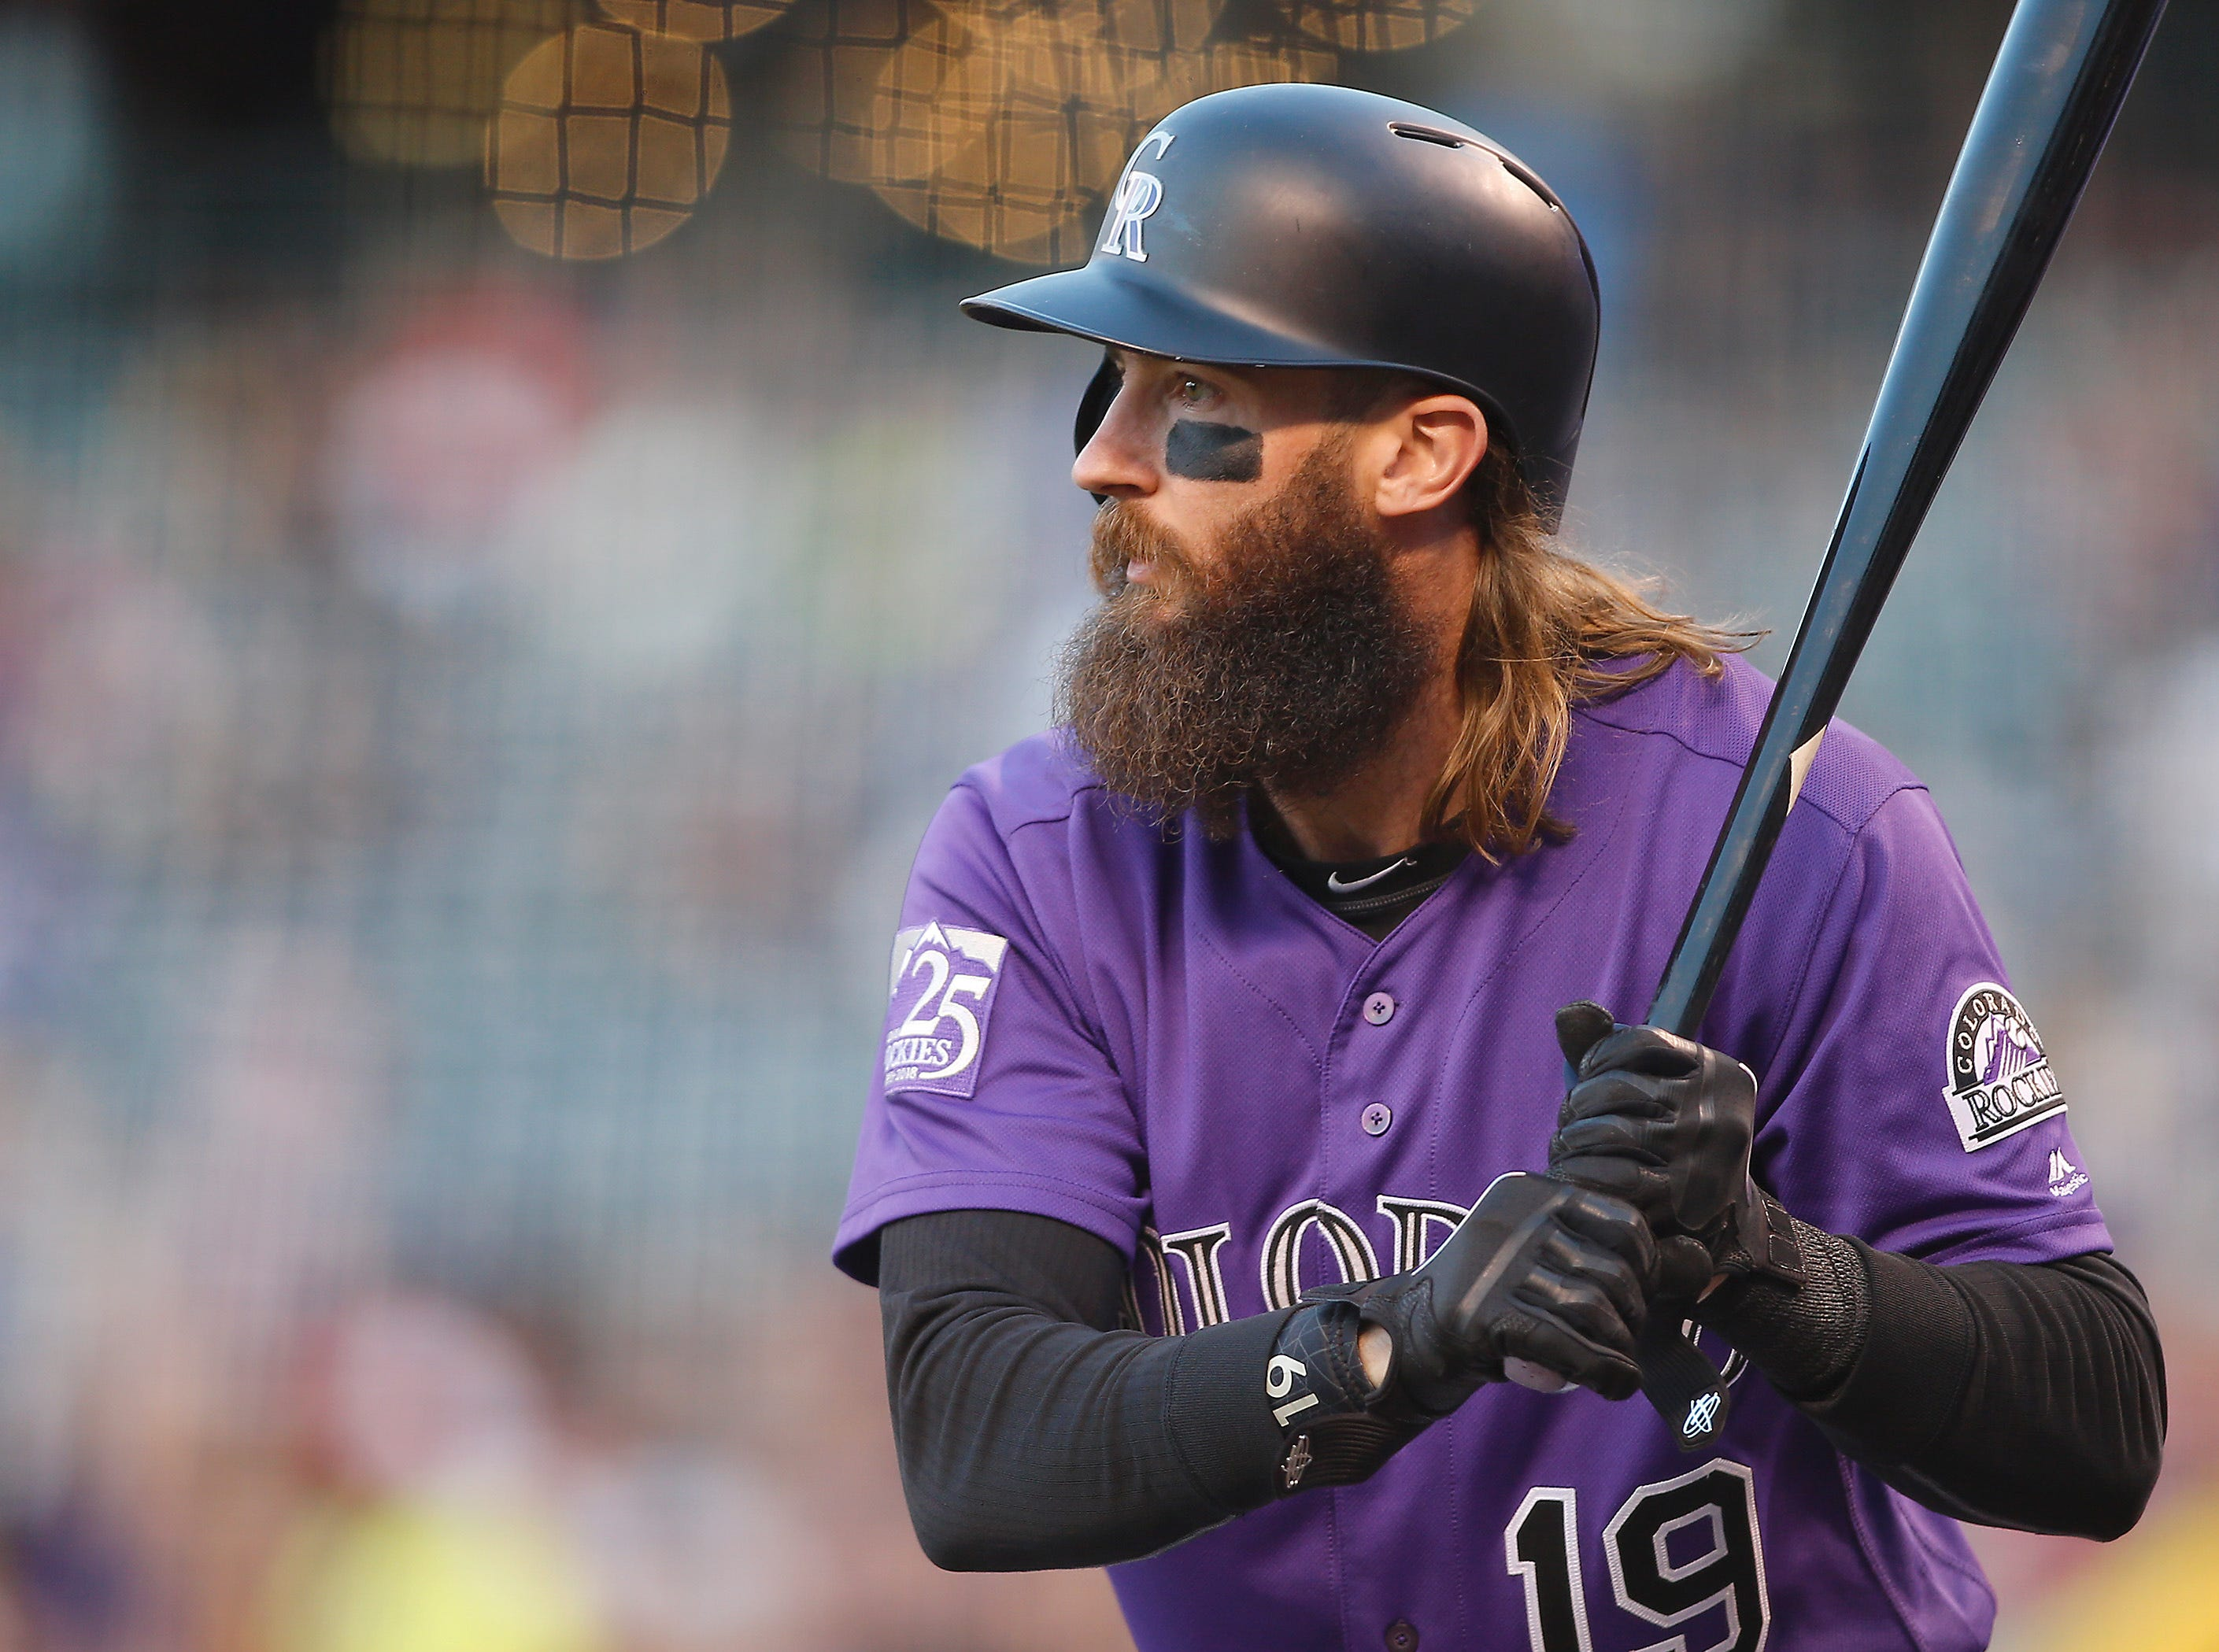 18. Charlie Blackmon, Colorado Rockies outfielder.